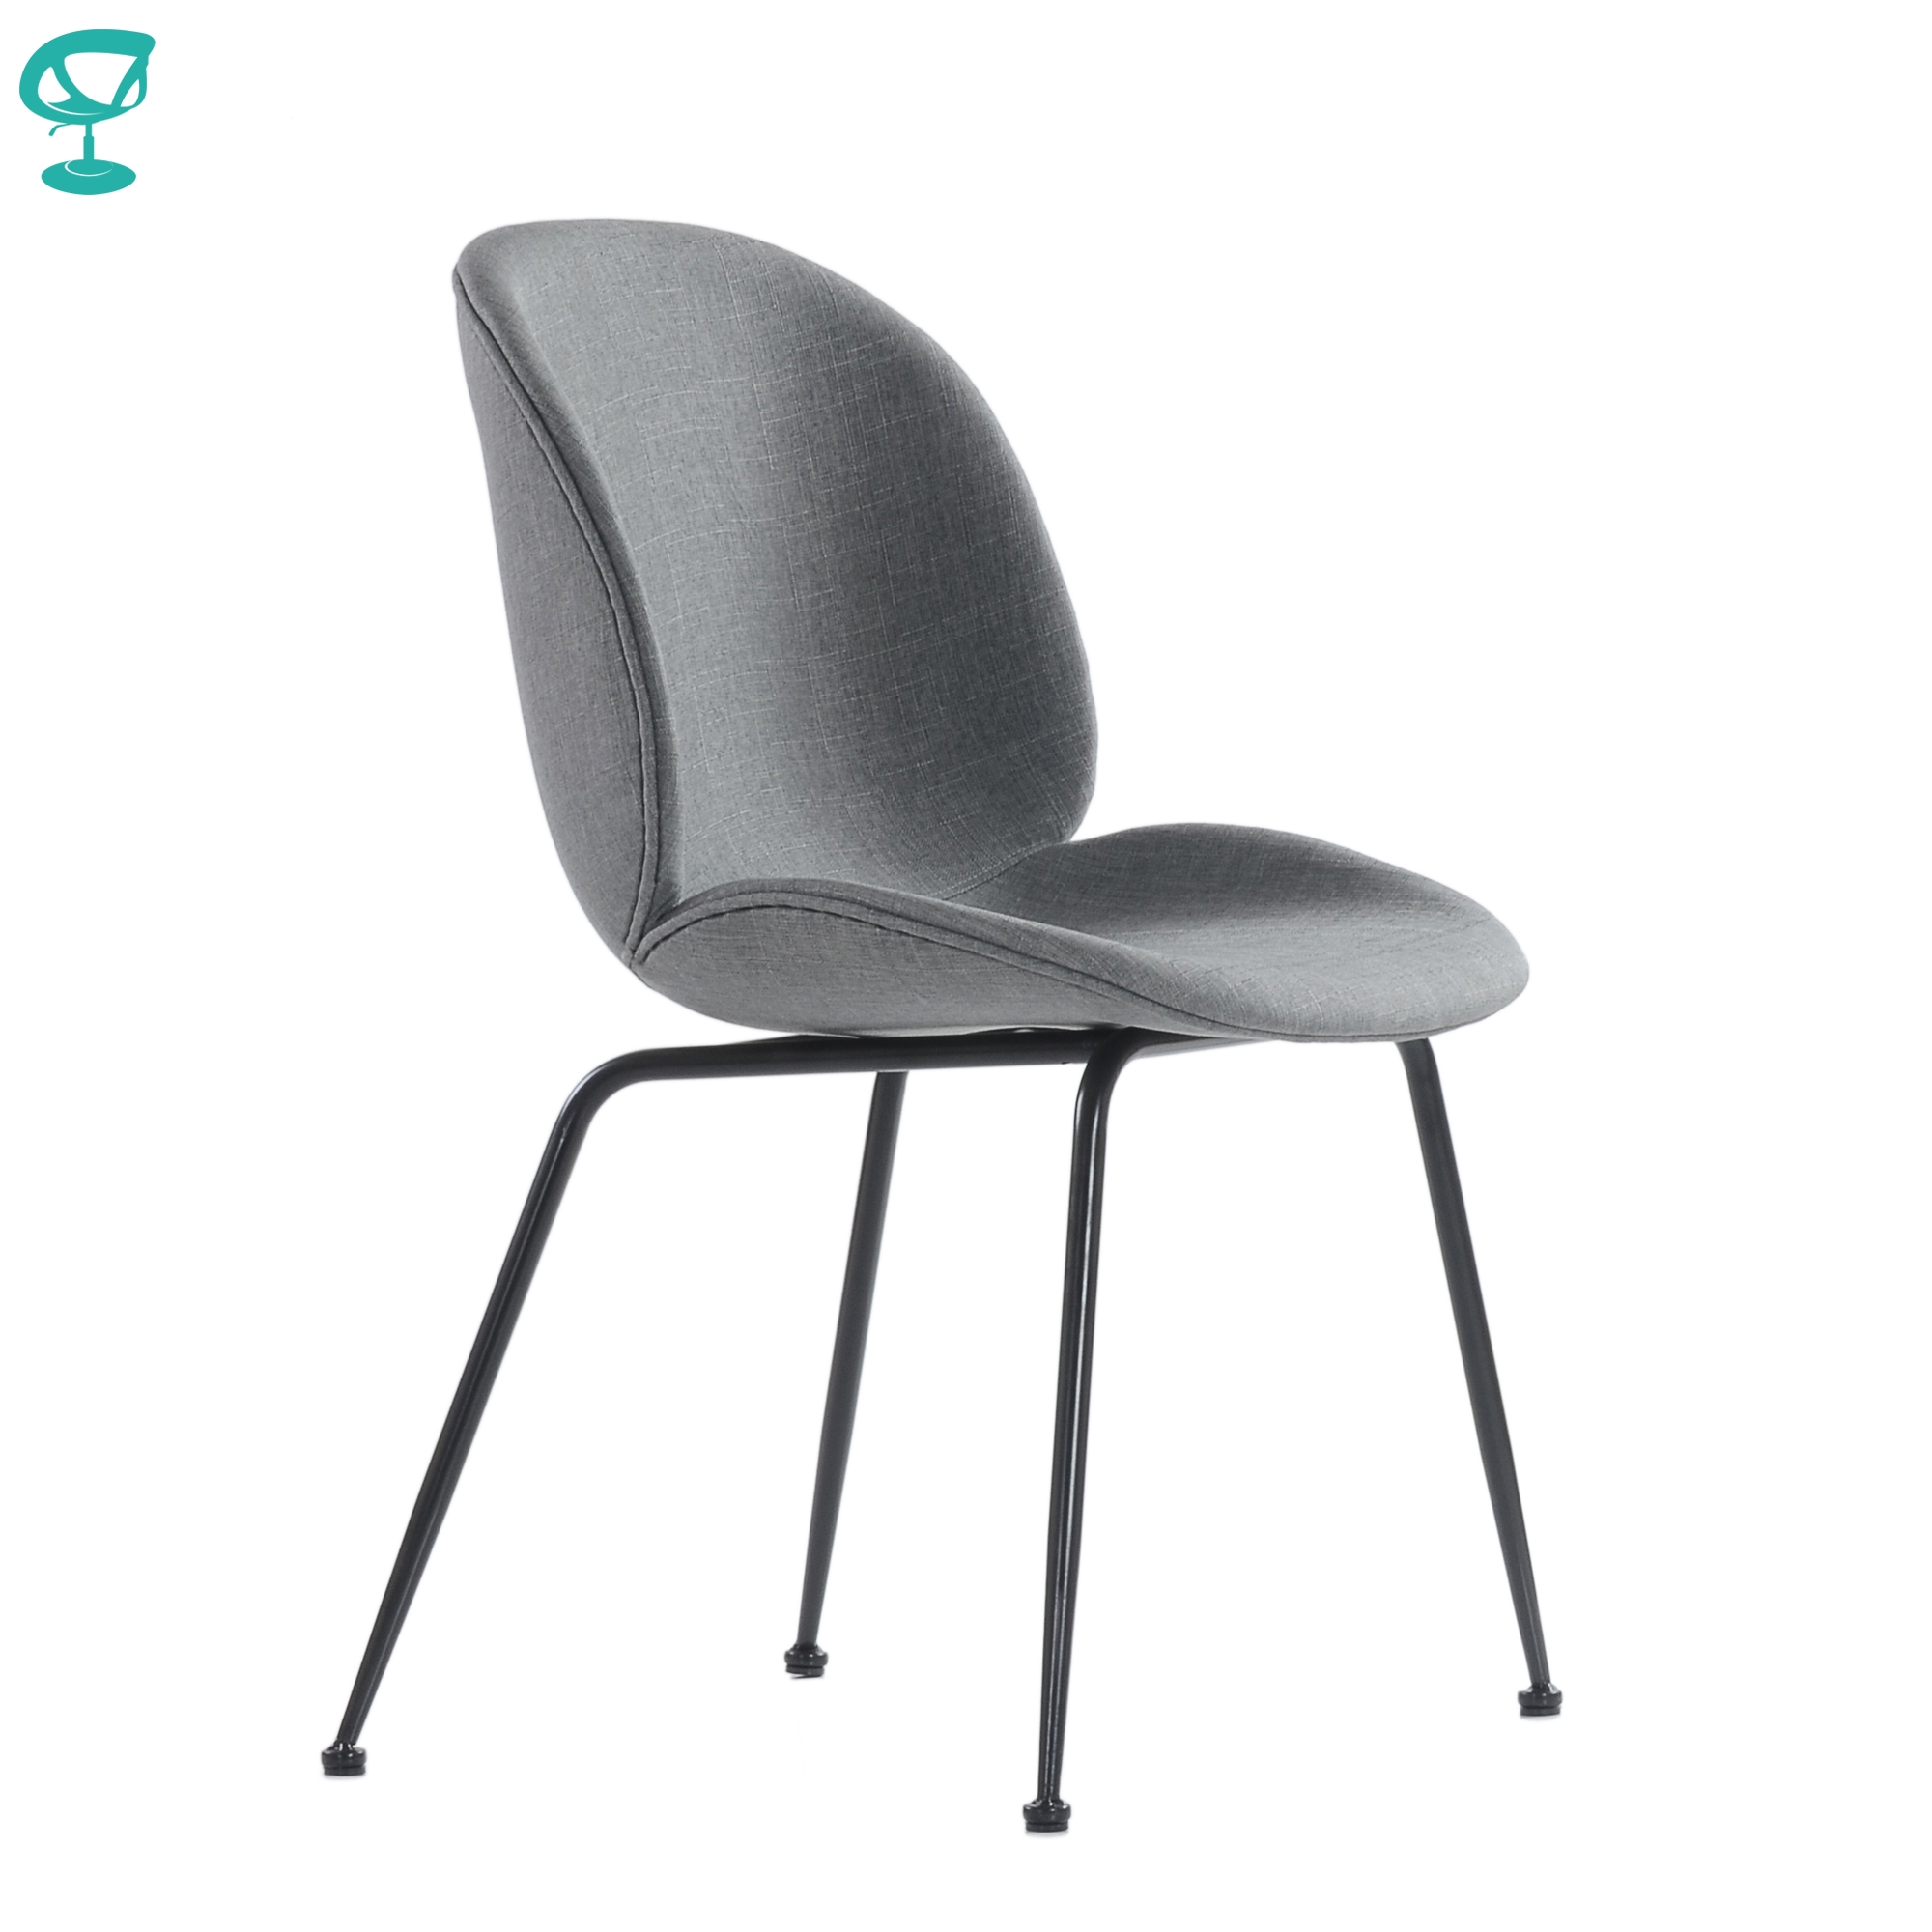 95739 Barneo S-17 Kitchen Chair On Metal Legs Seat Fabric Chair For Living Room Chair Dining Chair Furniture For Kitchen